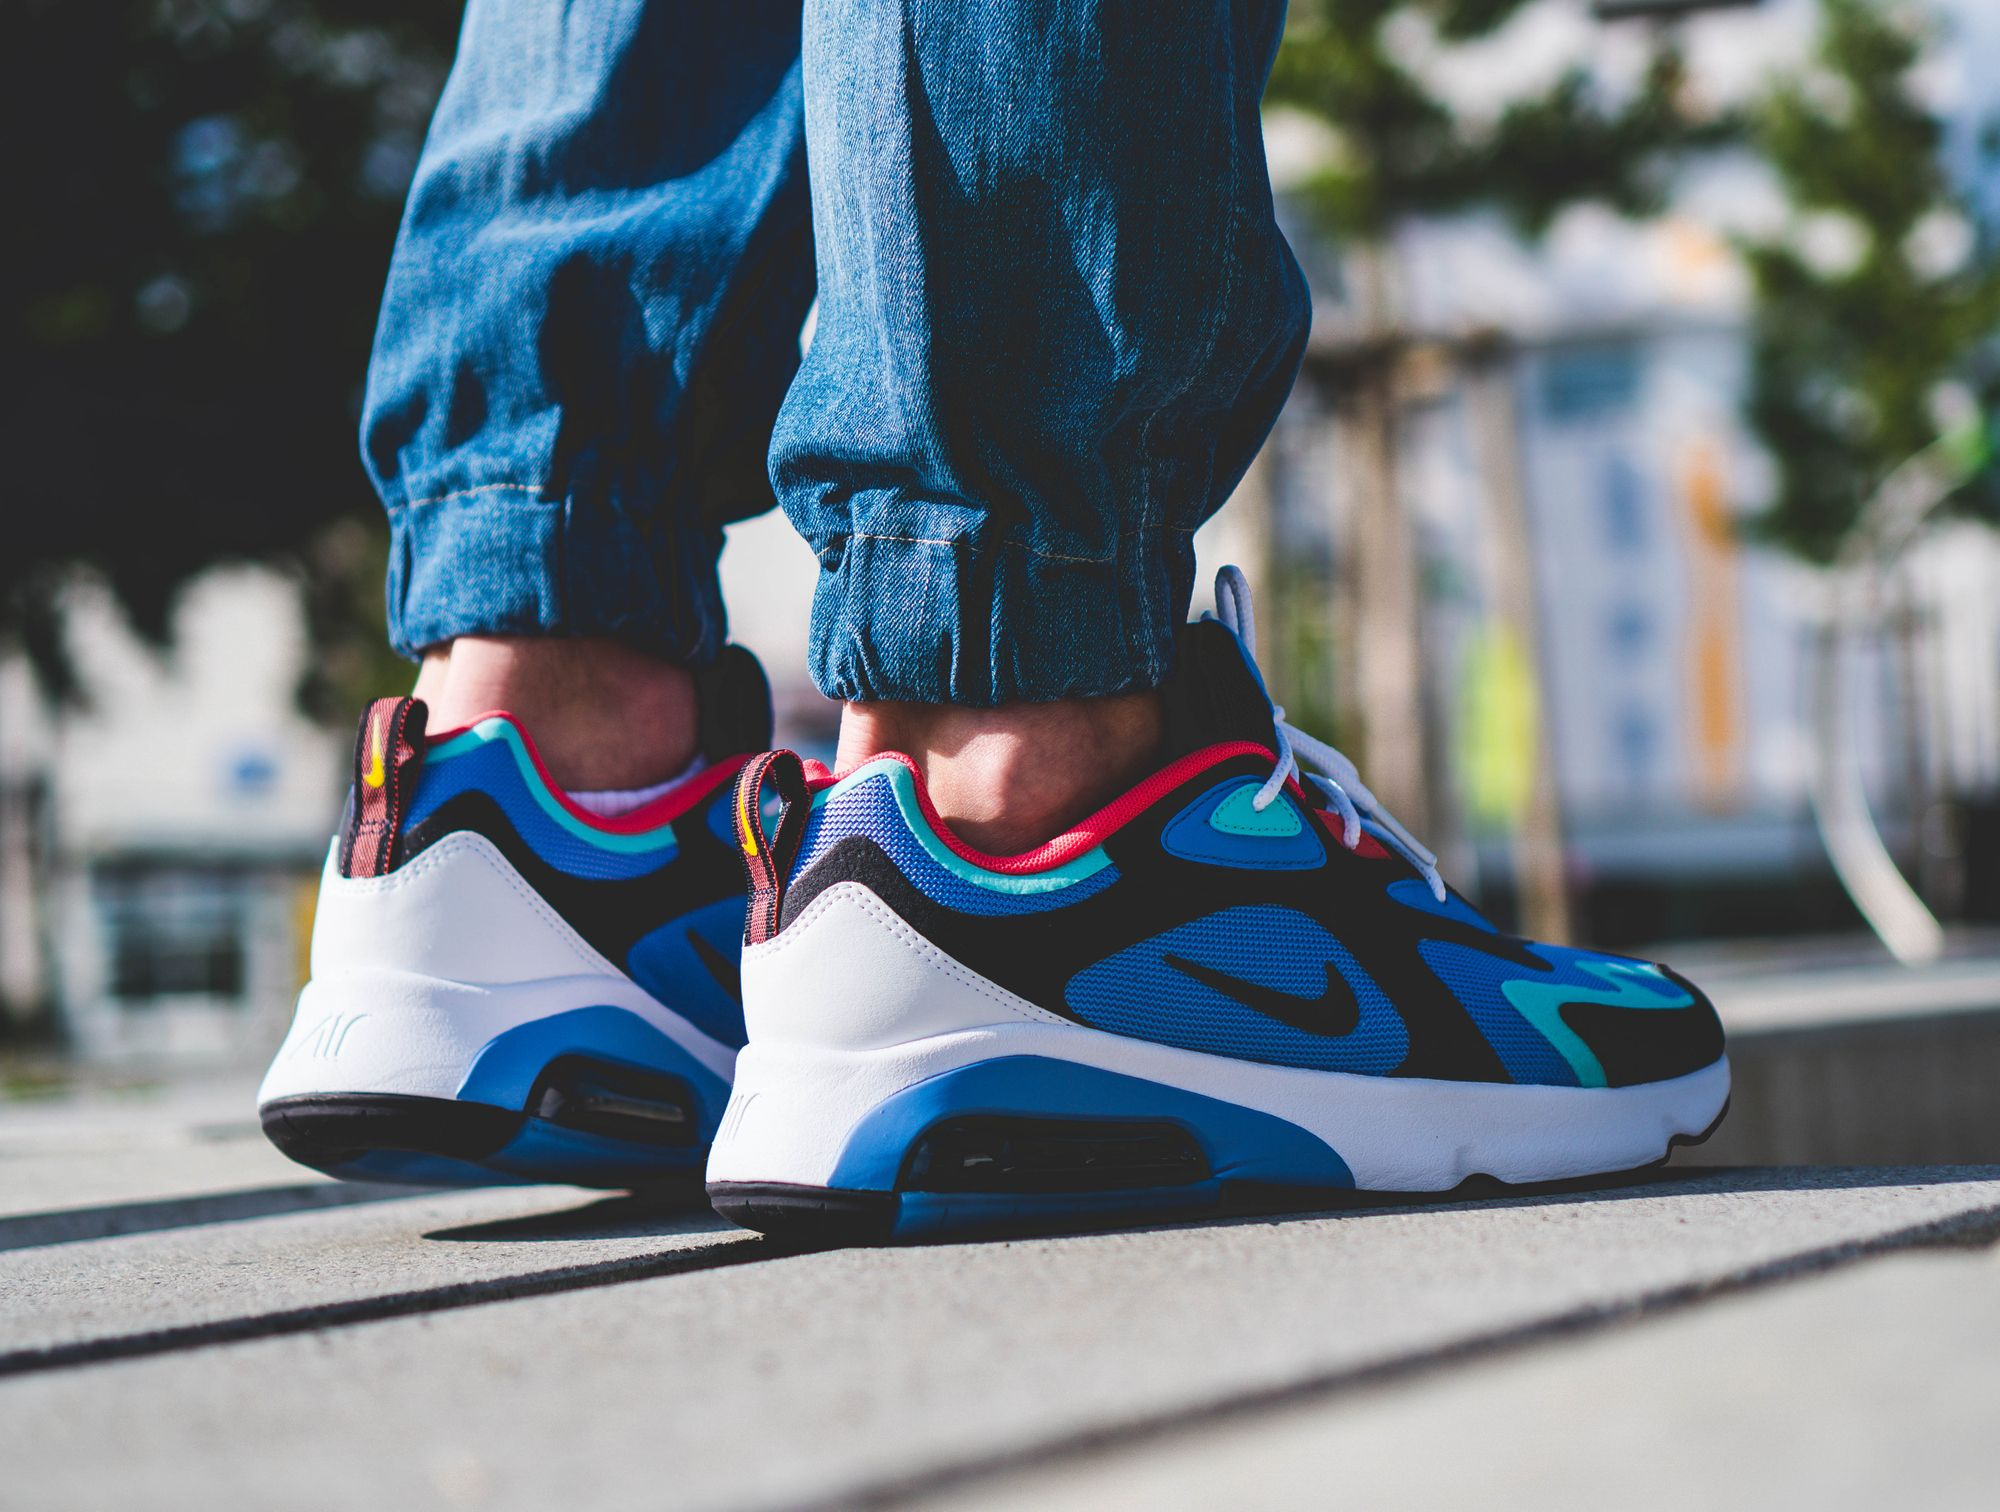 The brand new Nike Air Max 200 lifestyle silhouette in a